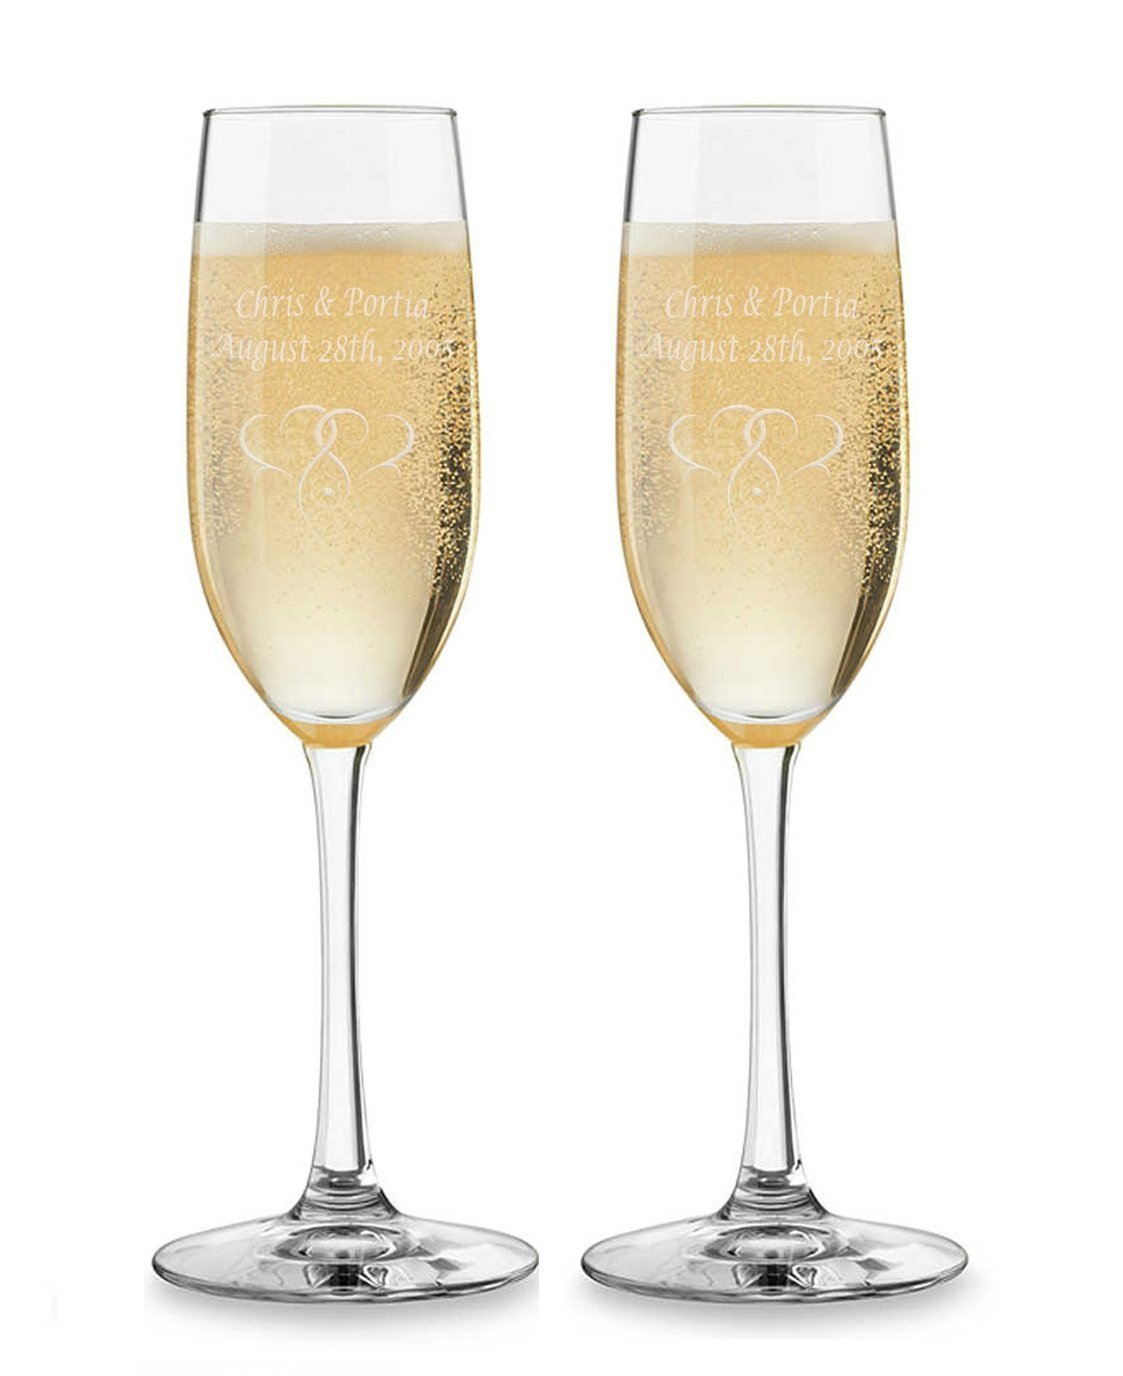 2PK Personalized Wedding Champagne Flutes Custom Engraved Toasting Glasses by CKB Products Wholesale LENFLUTE2PK2